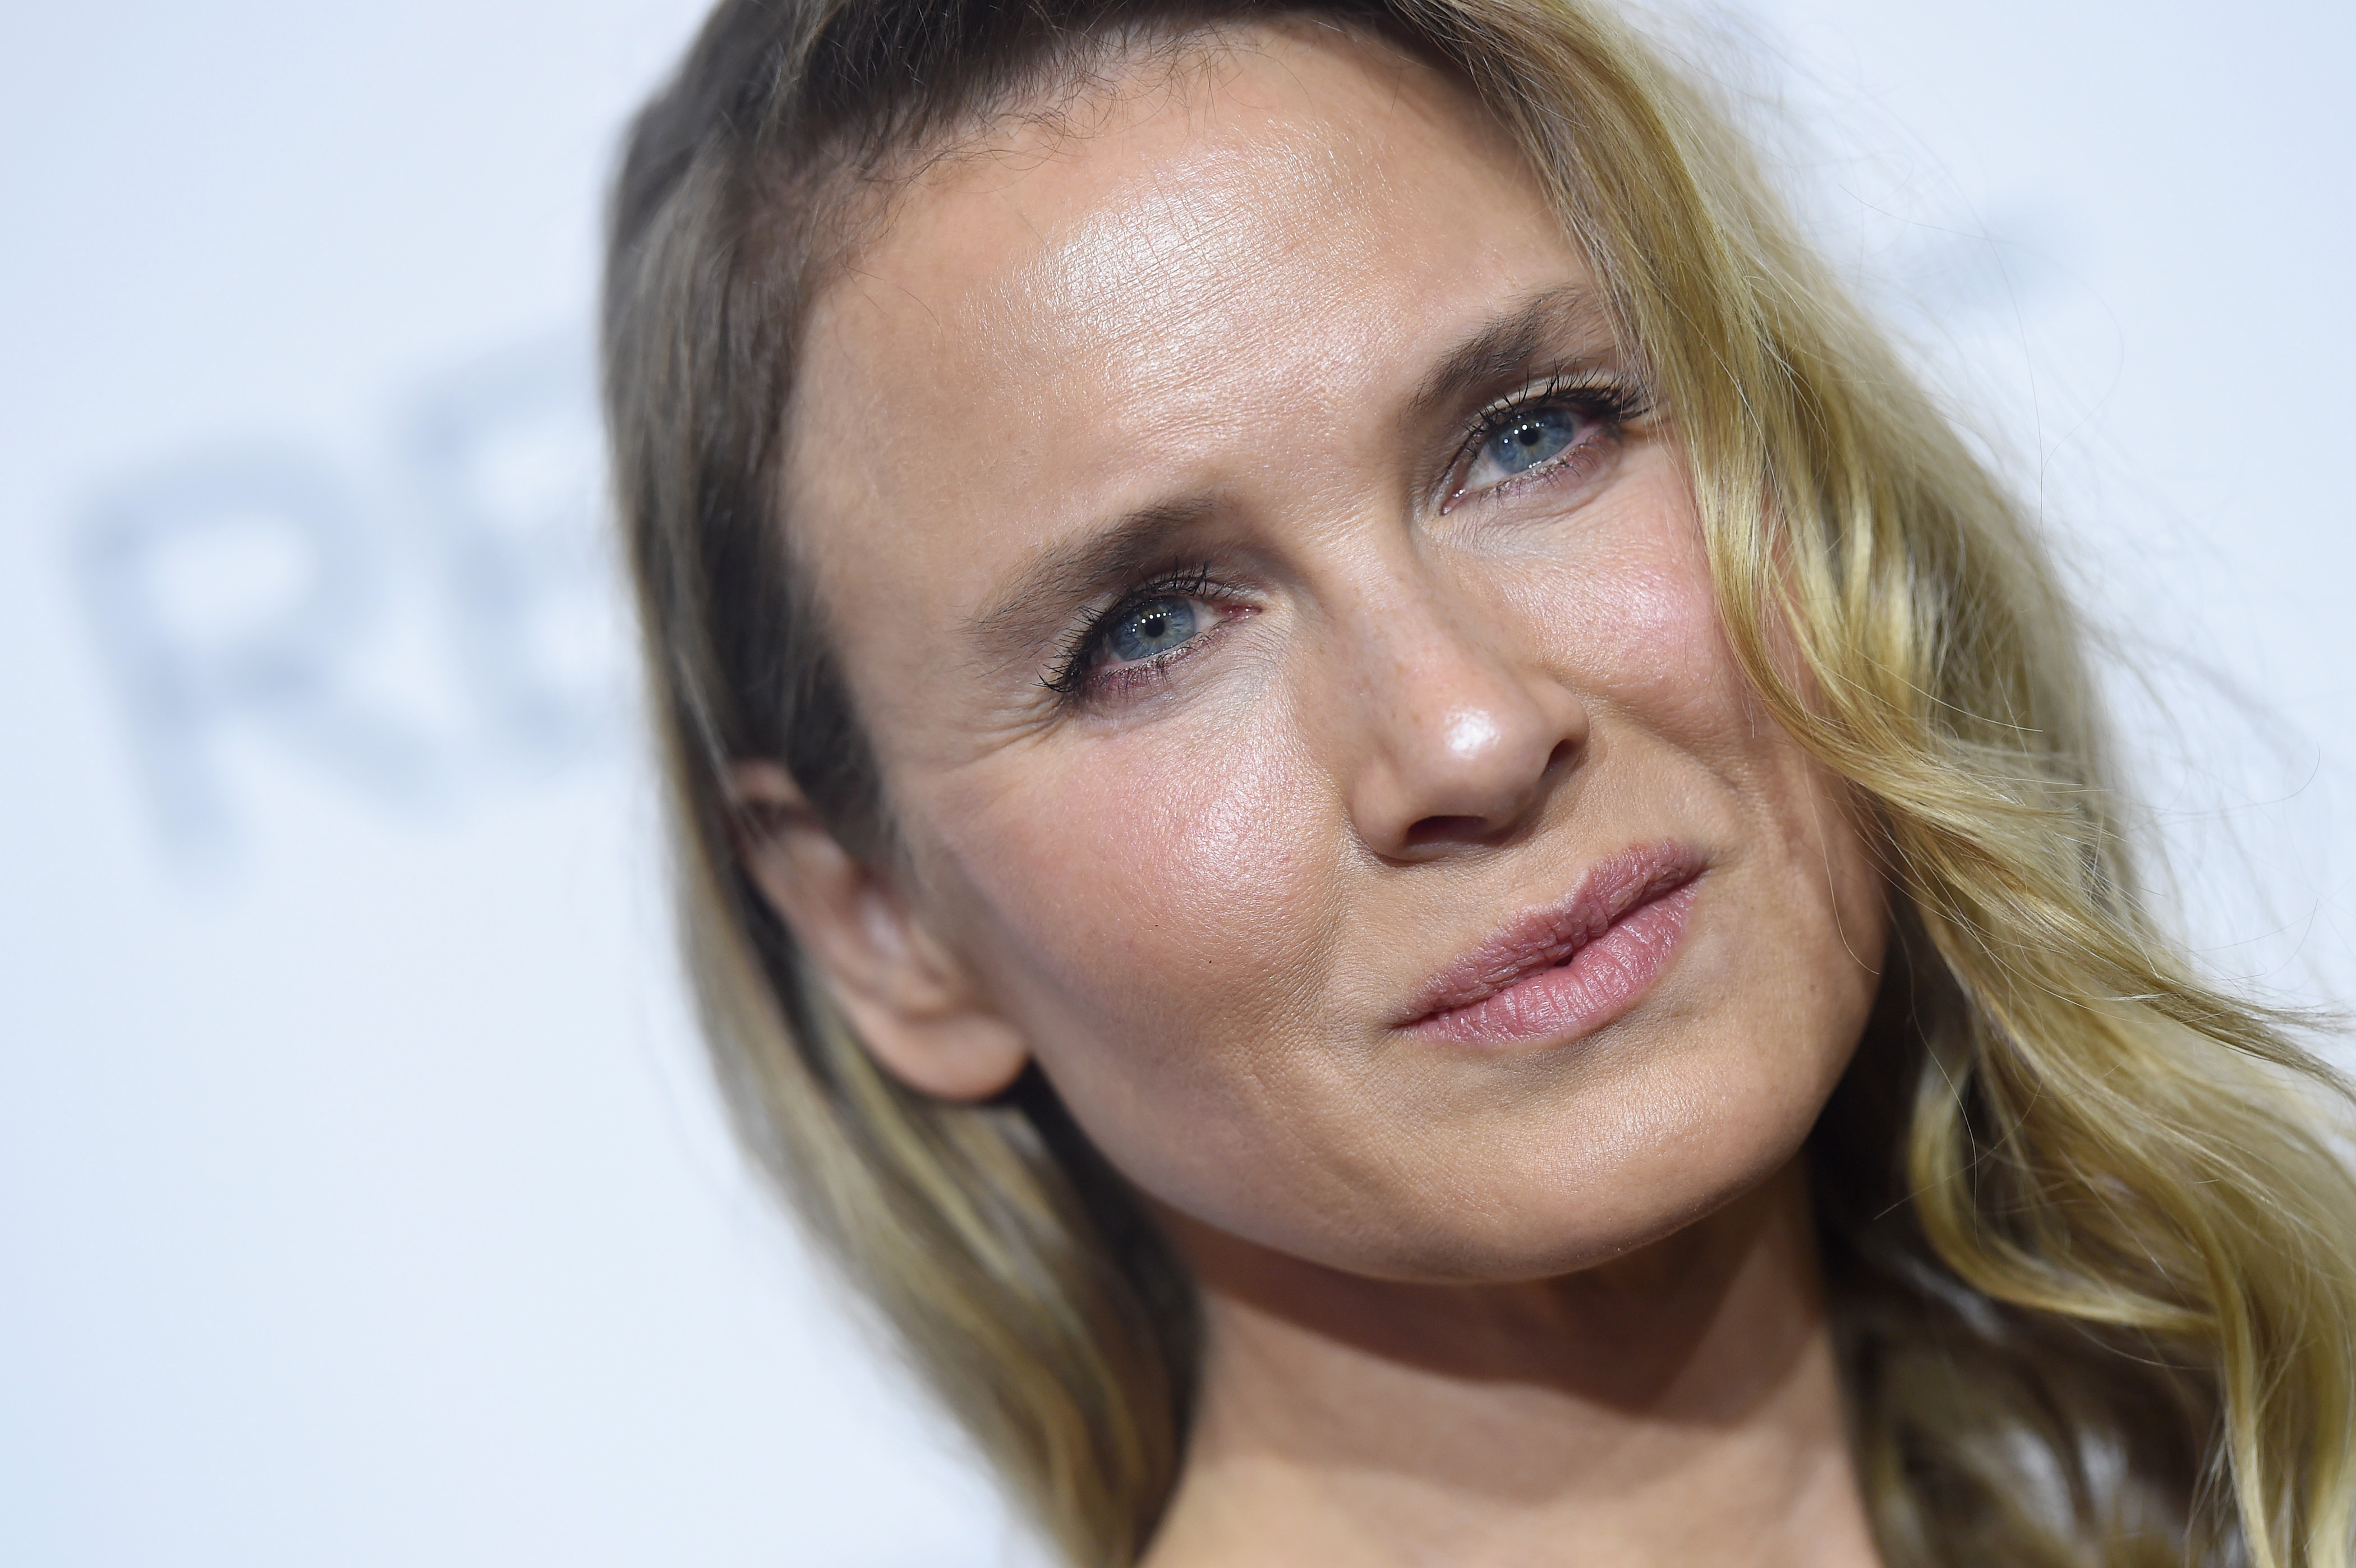 Renée Zellweger pens an amazing op-ed on the toxic culture of humiliation